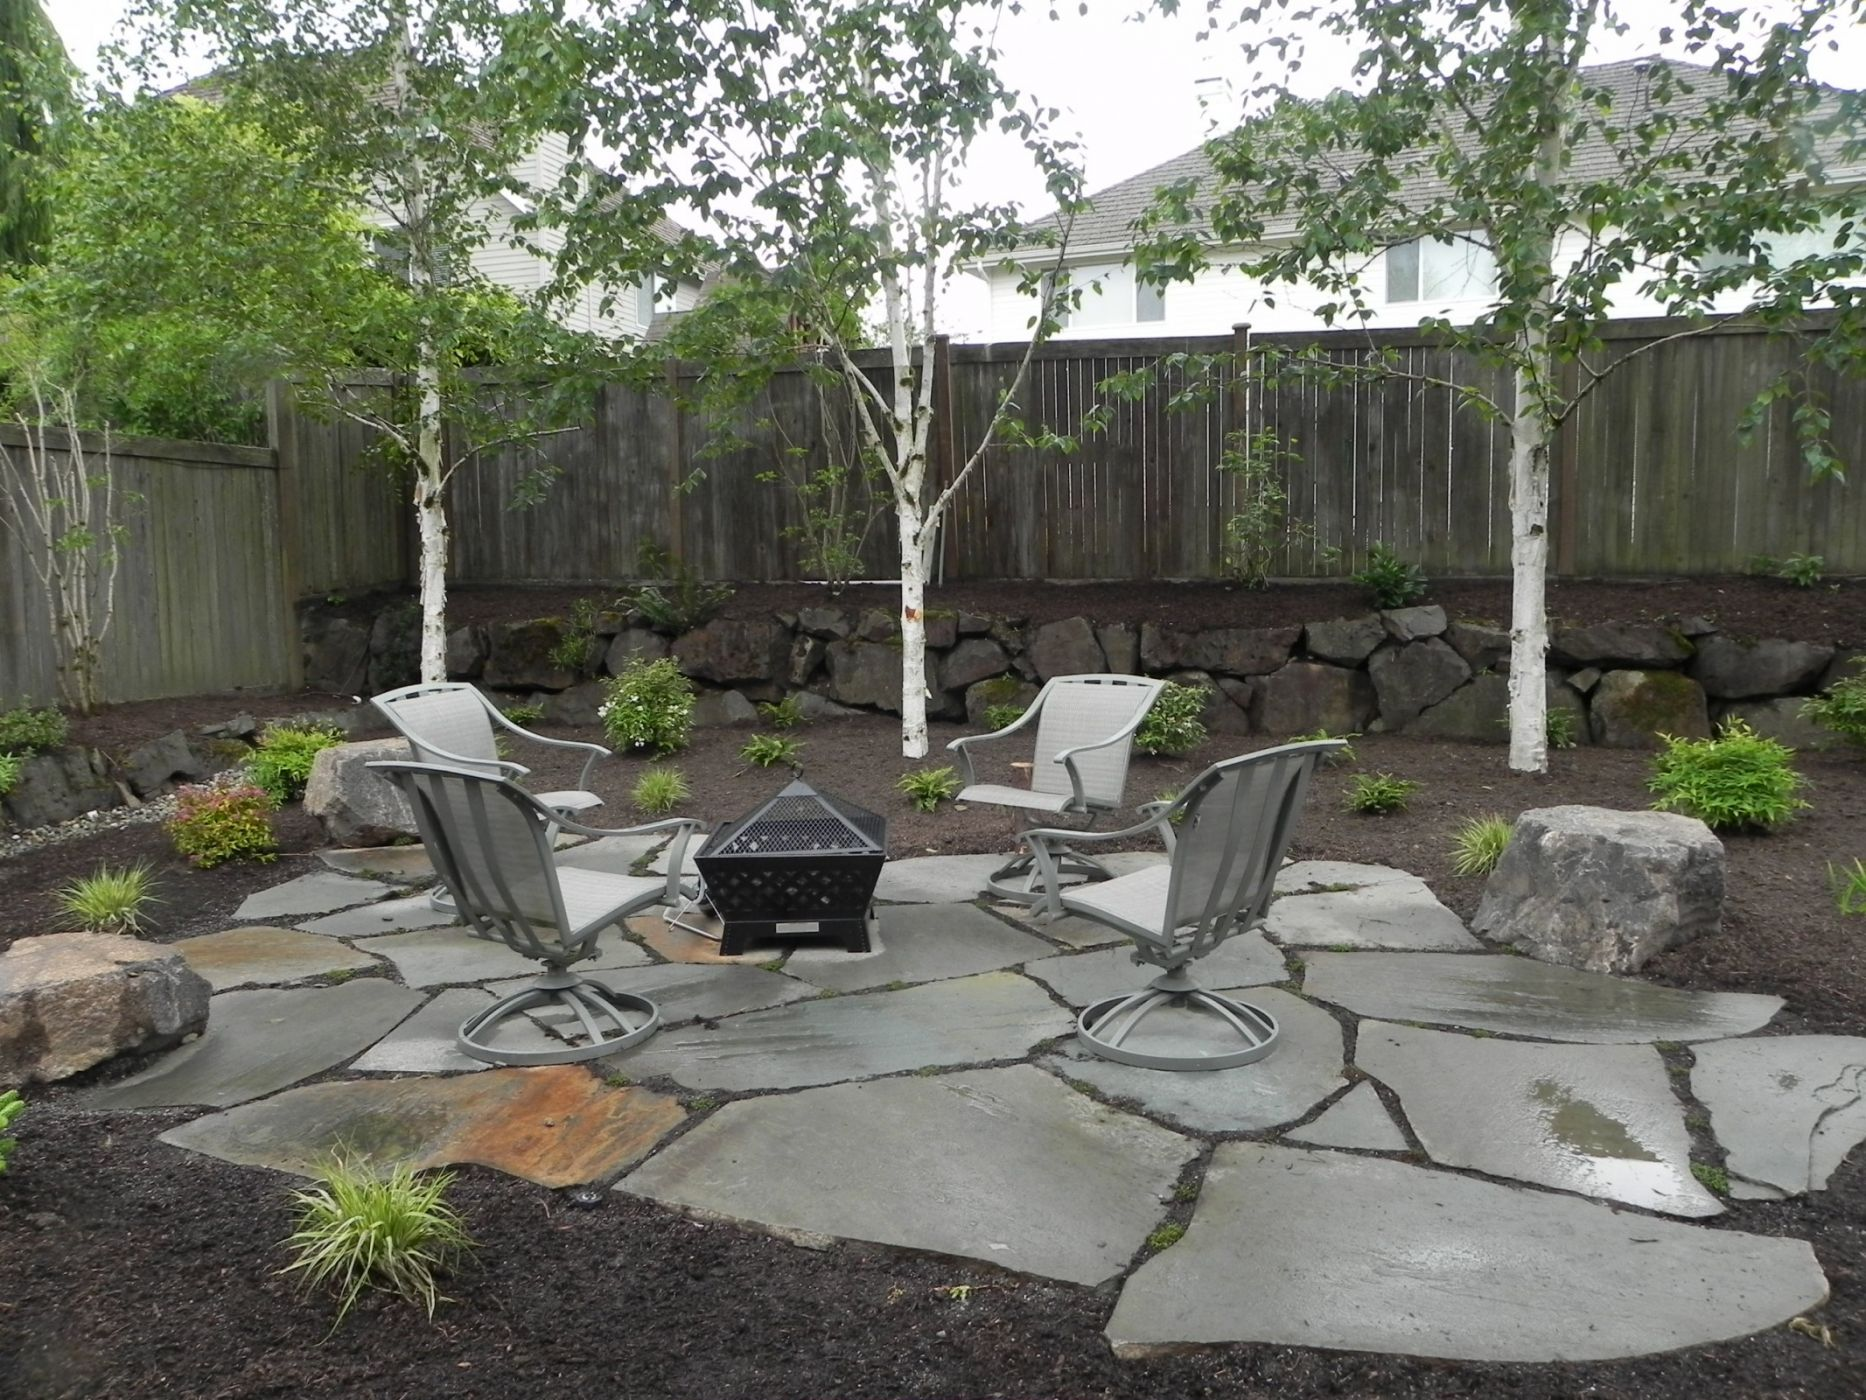 Backyard Fire Pit Plans : Snohomish backyard firepit  Sublime Garden Design  Landscape Design